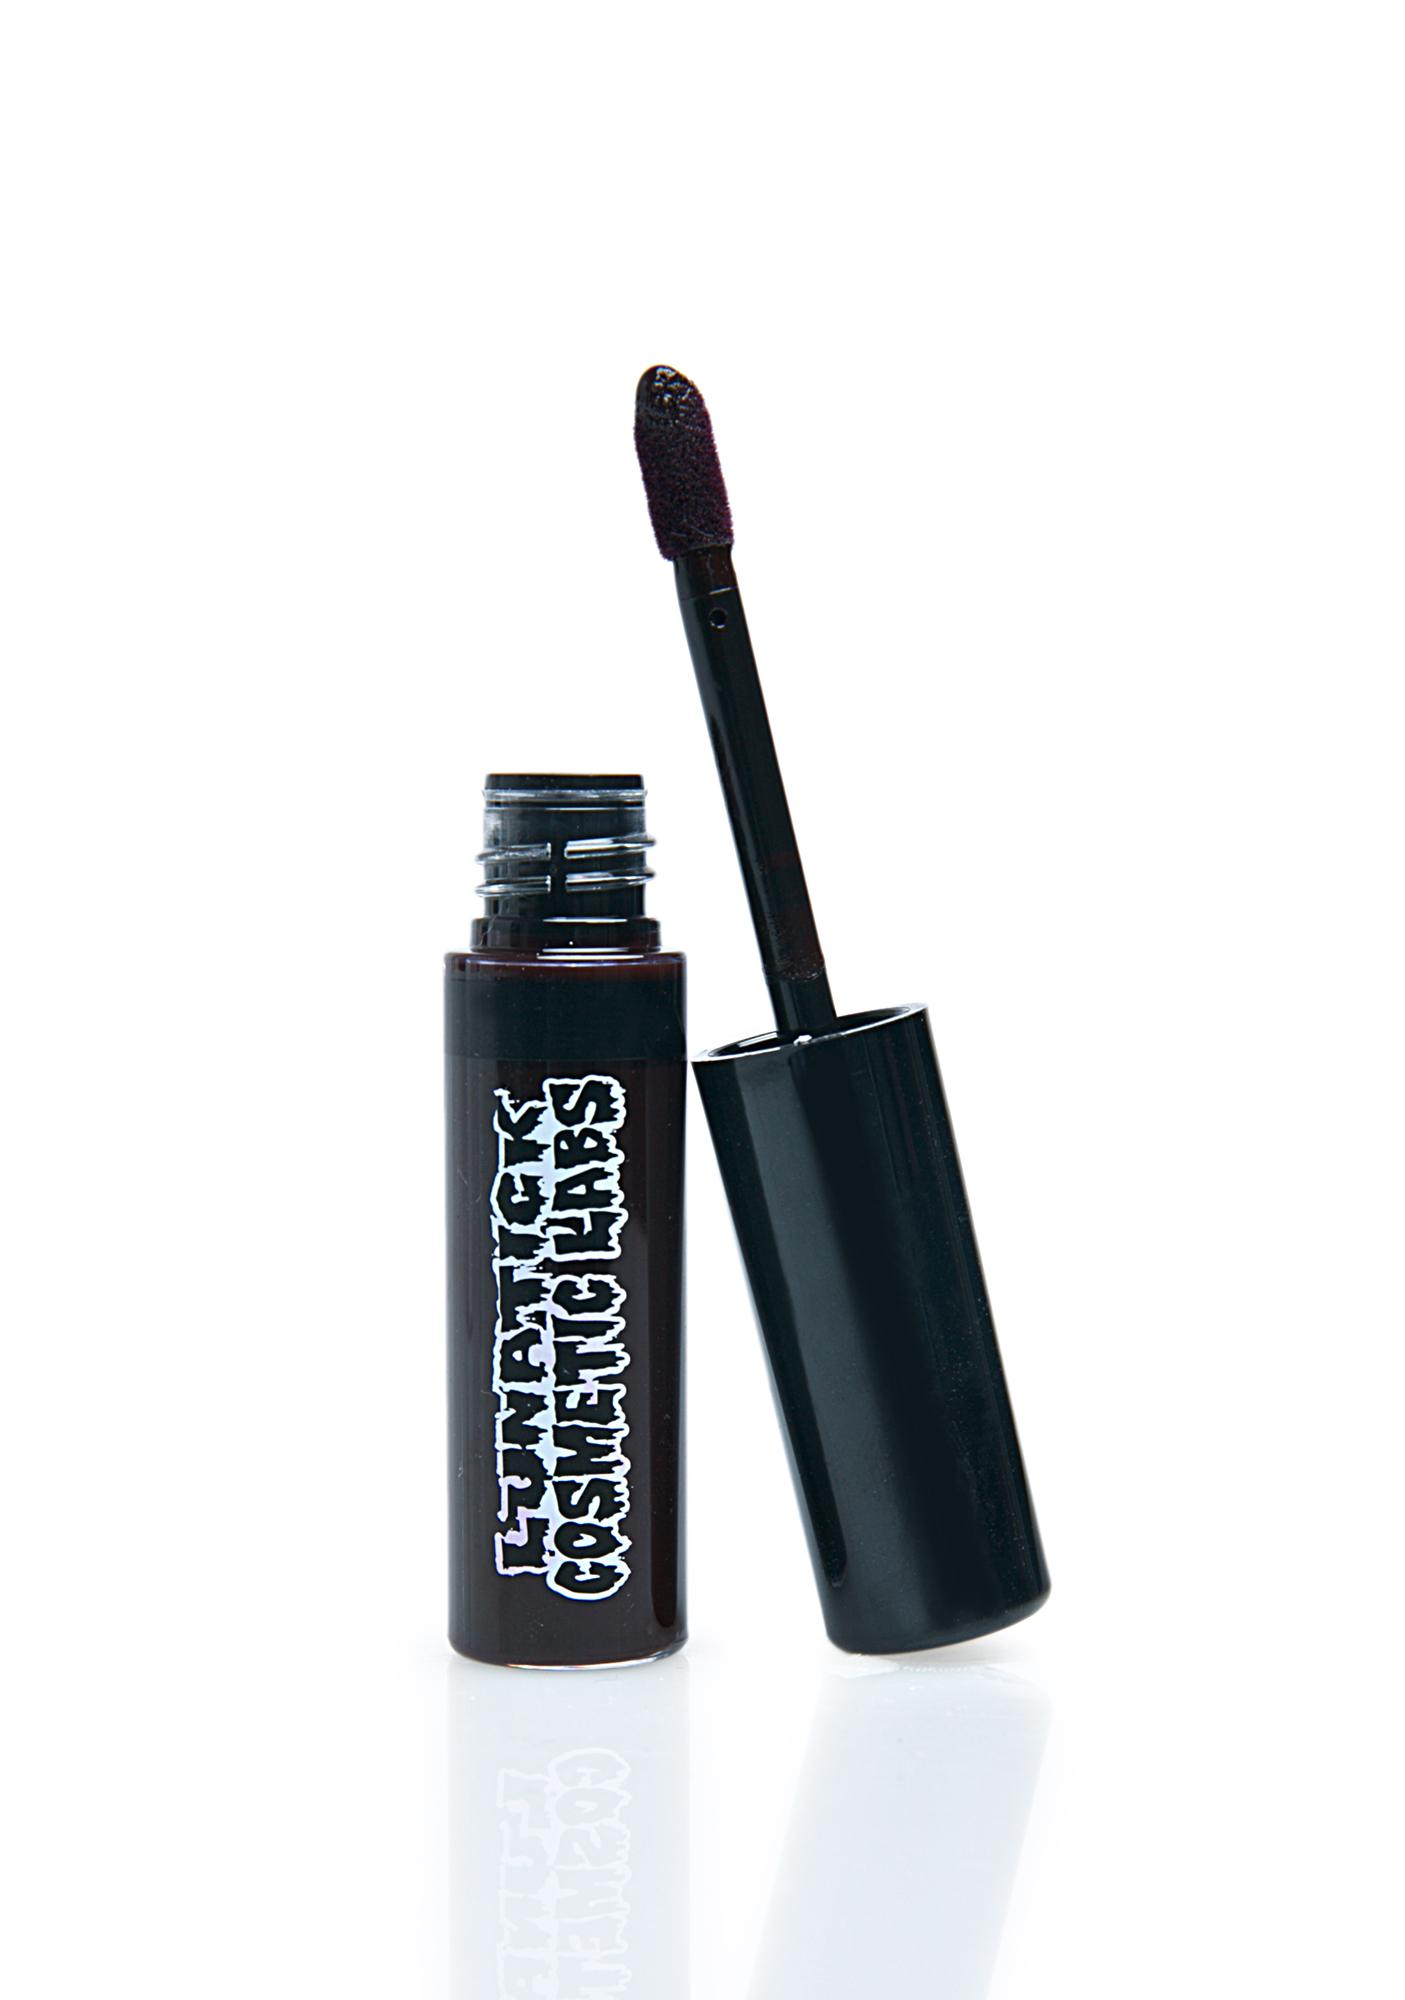 Lunatick Cosmetic Labs Tainted Temptress Lip Slick